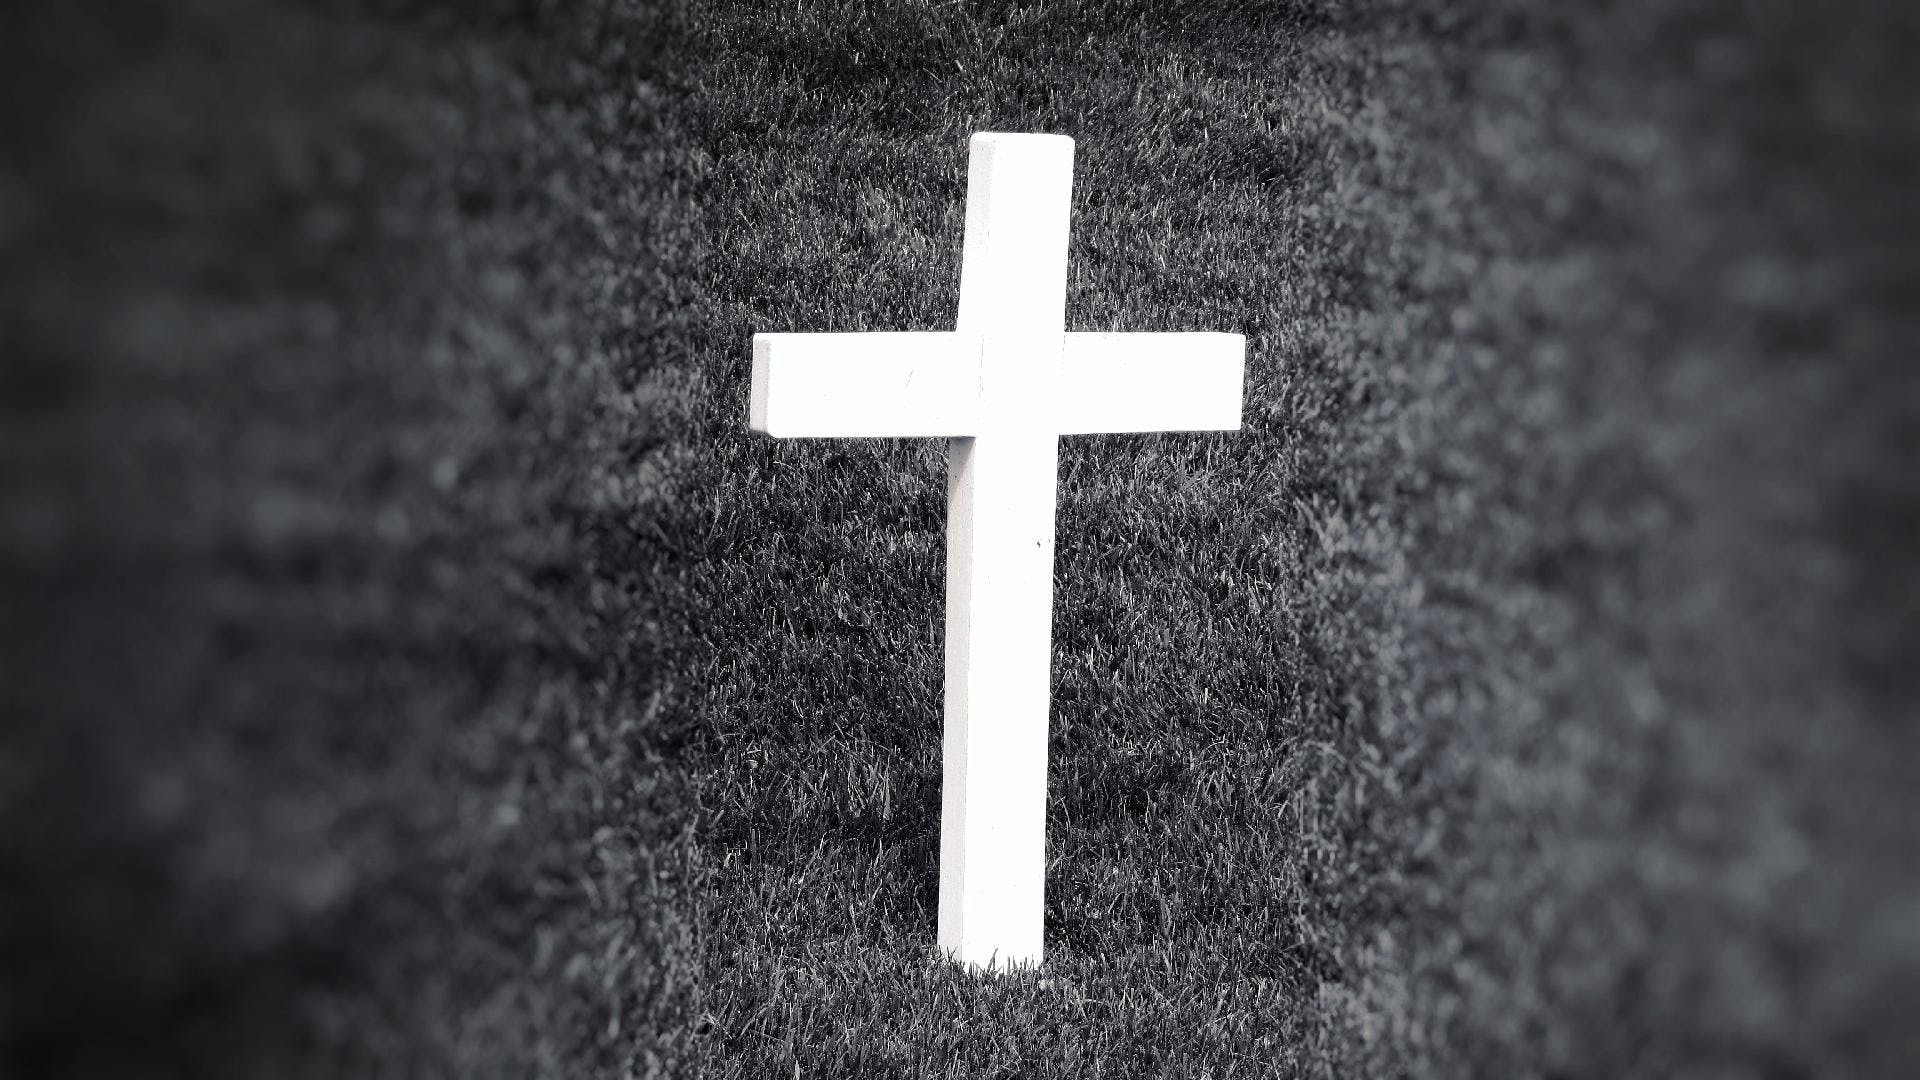 Free stock photo of black-and-white, grass, cross, symbol